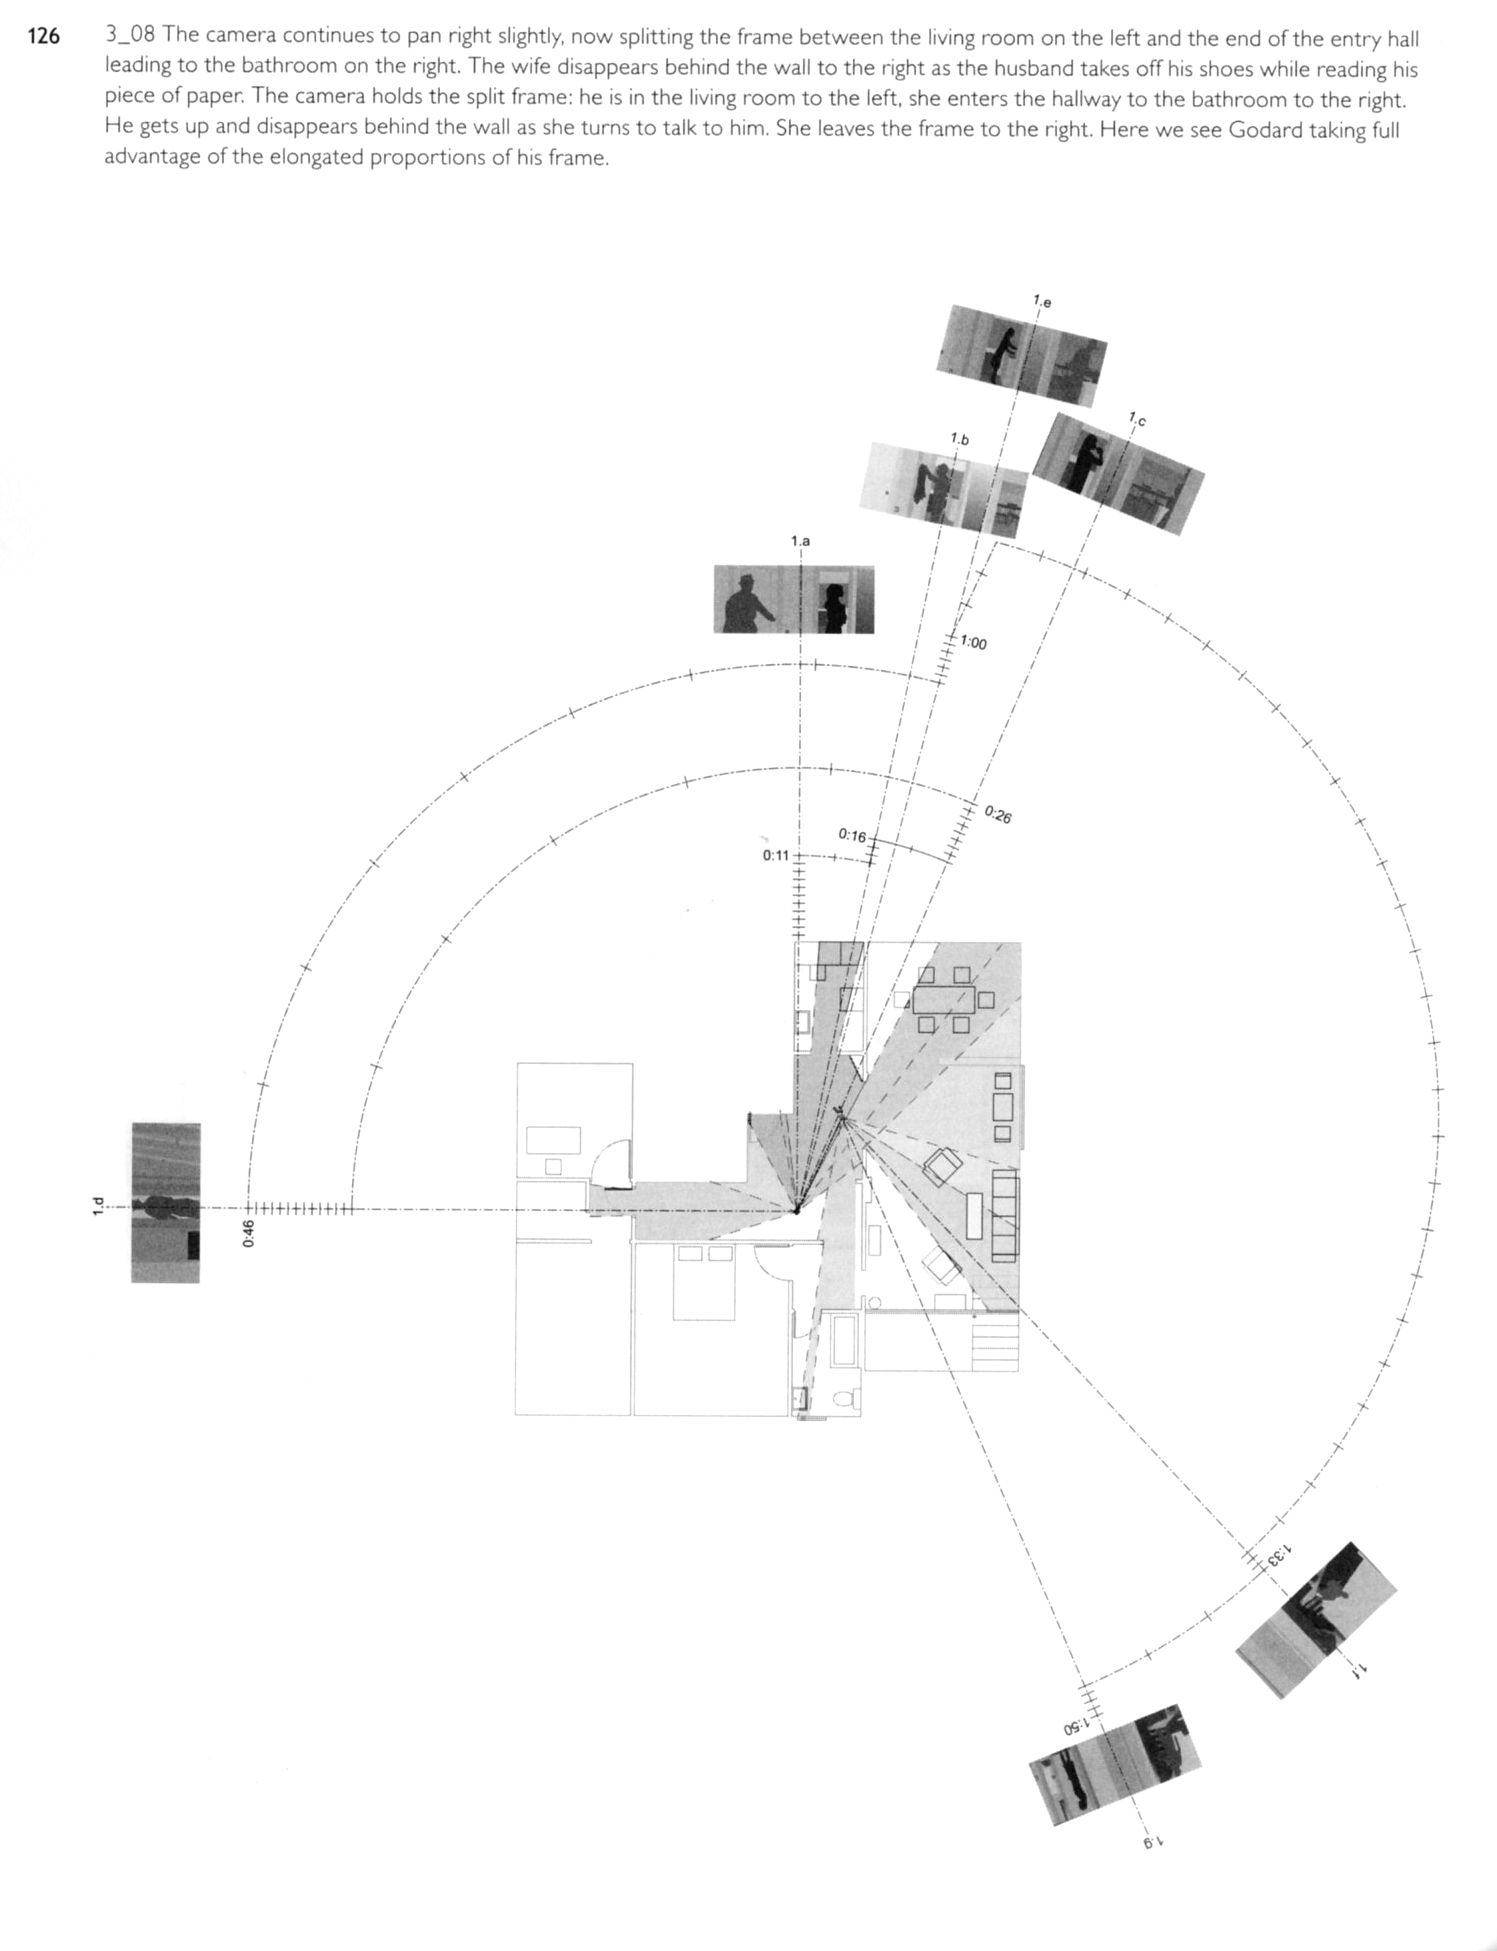 Program diagrams architecture google search arch diagrams - Cinemetrics By Mcgrath Gardner Plan Diagram Links Distant View To Location Cone Of Vision And Time